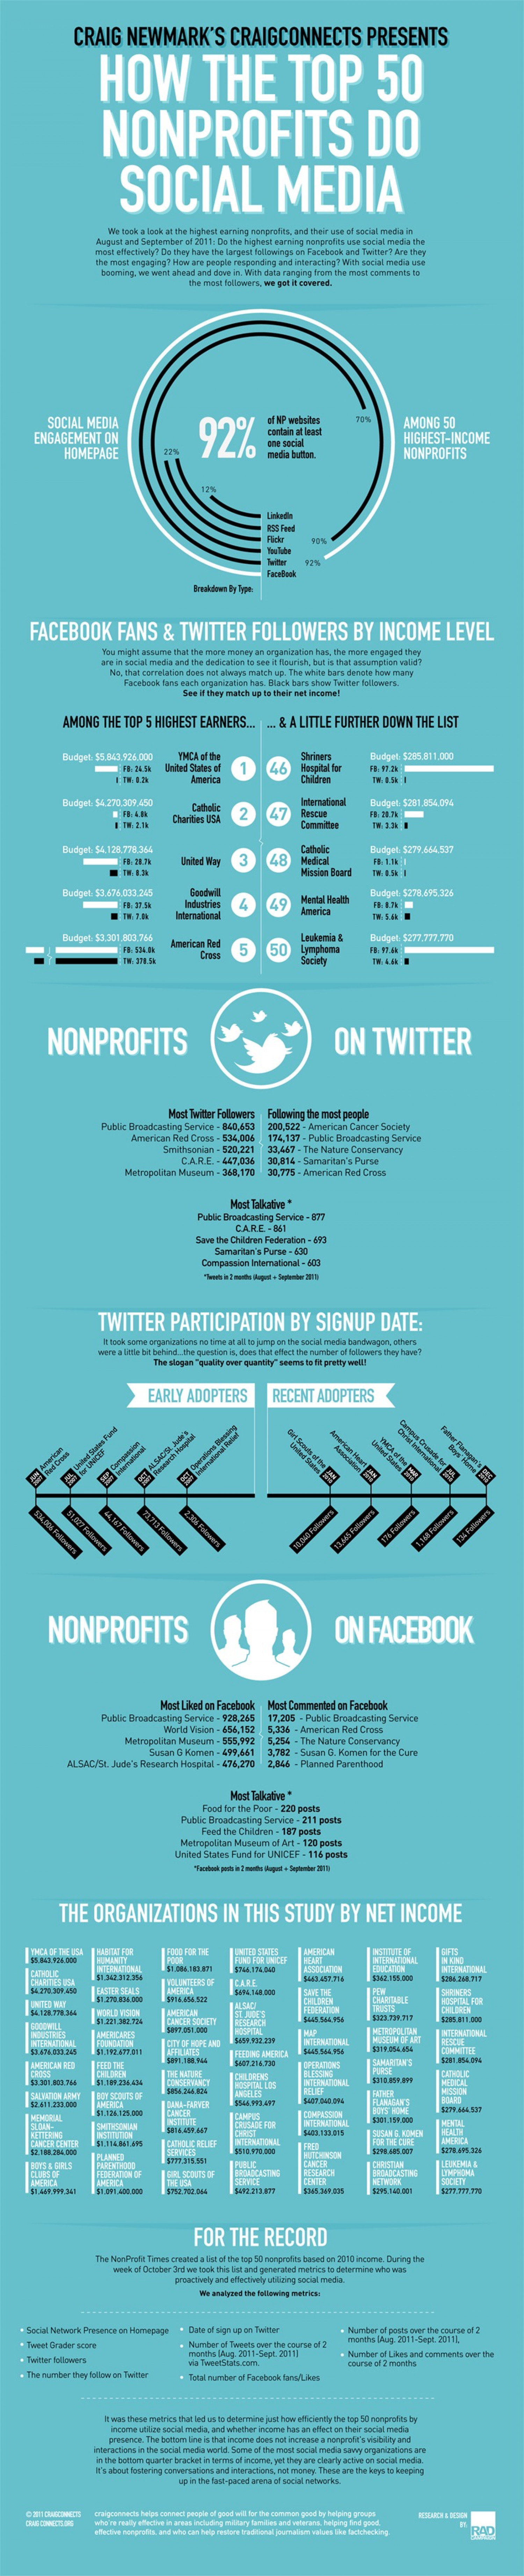 How the Top 50 Nonprofits Do Social Media Infographic